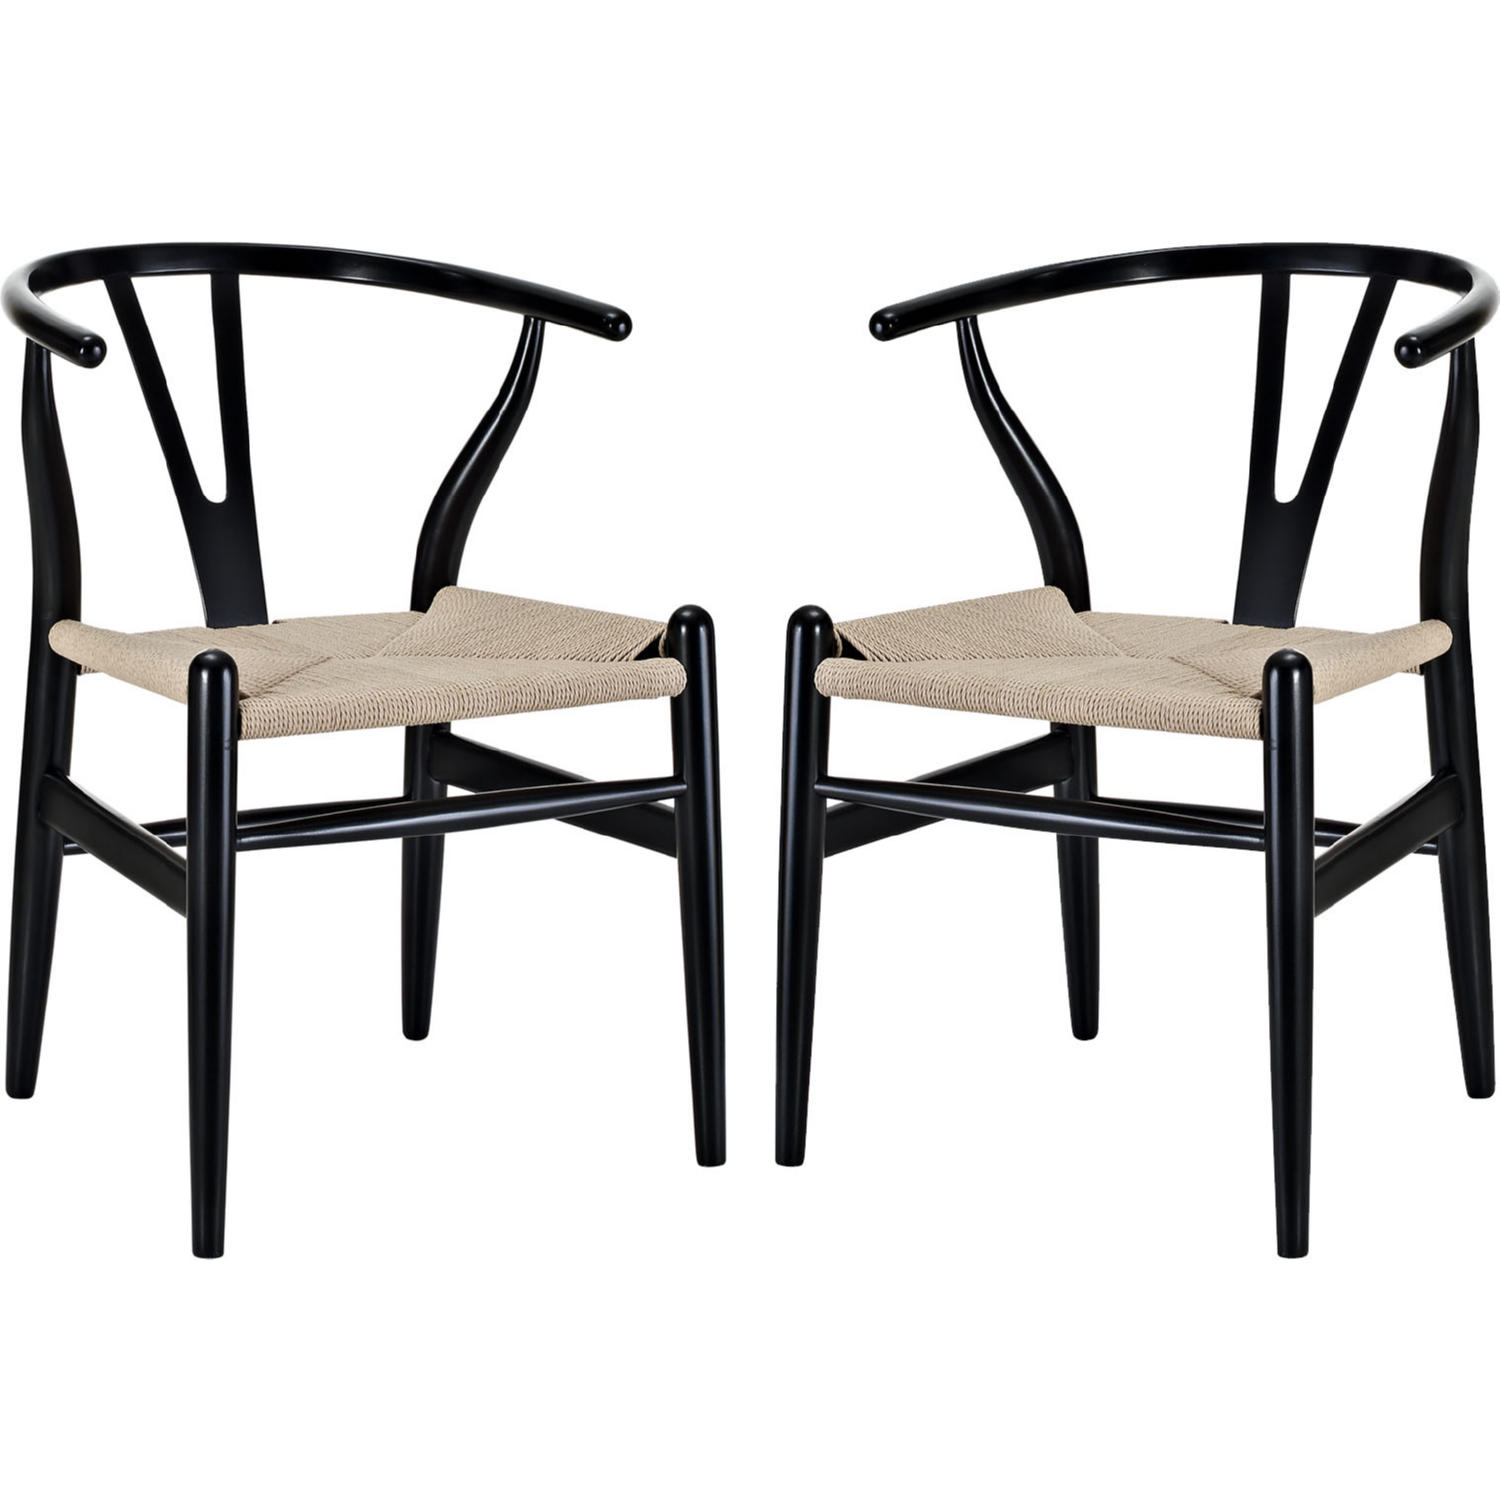 Wishbone Dining Chair Amish Wishbone Style Dining Armchair In Black Set Of 2 By Modway